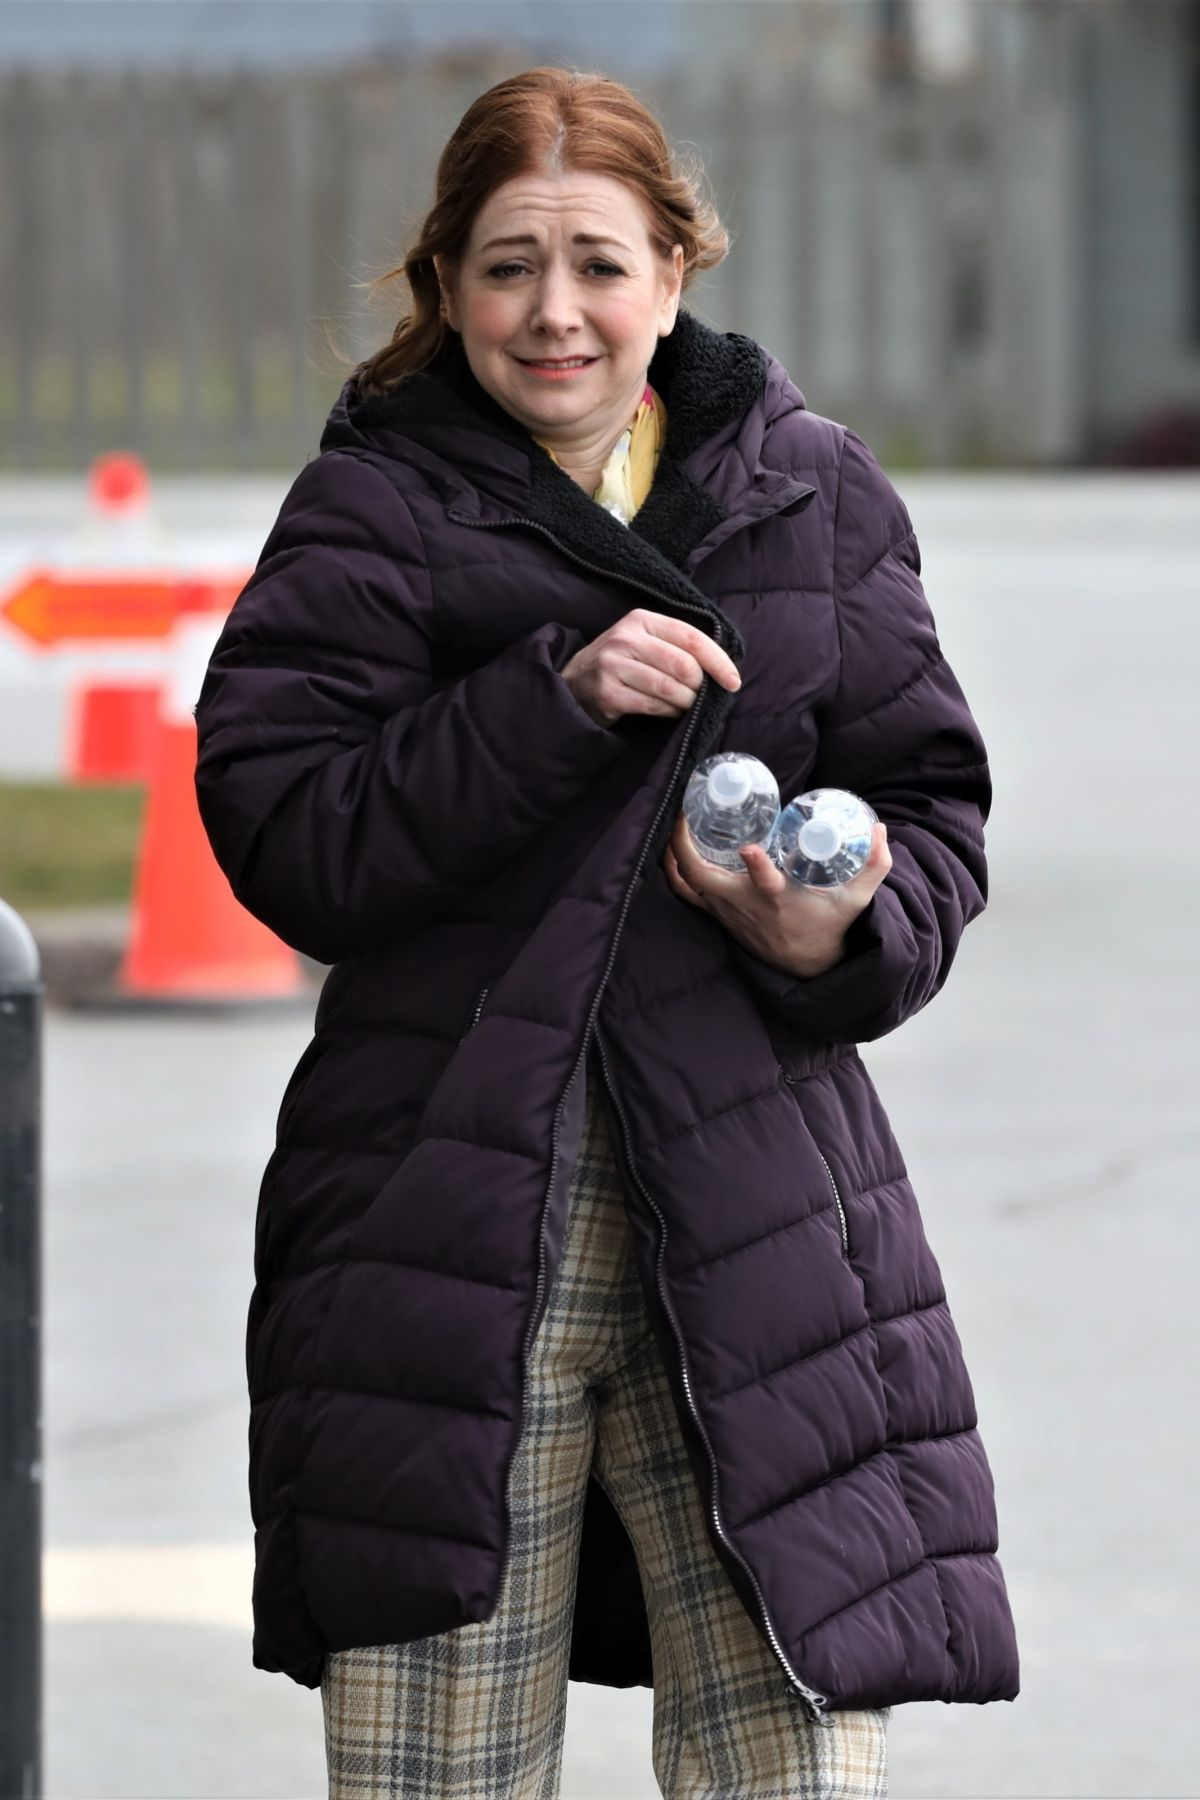 Filming In Progress The Most Beautiful Actress In The World: ALYSON HANNIGAN Out Filming In Vancouver 03/15/2019